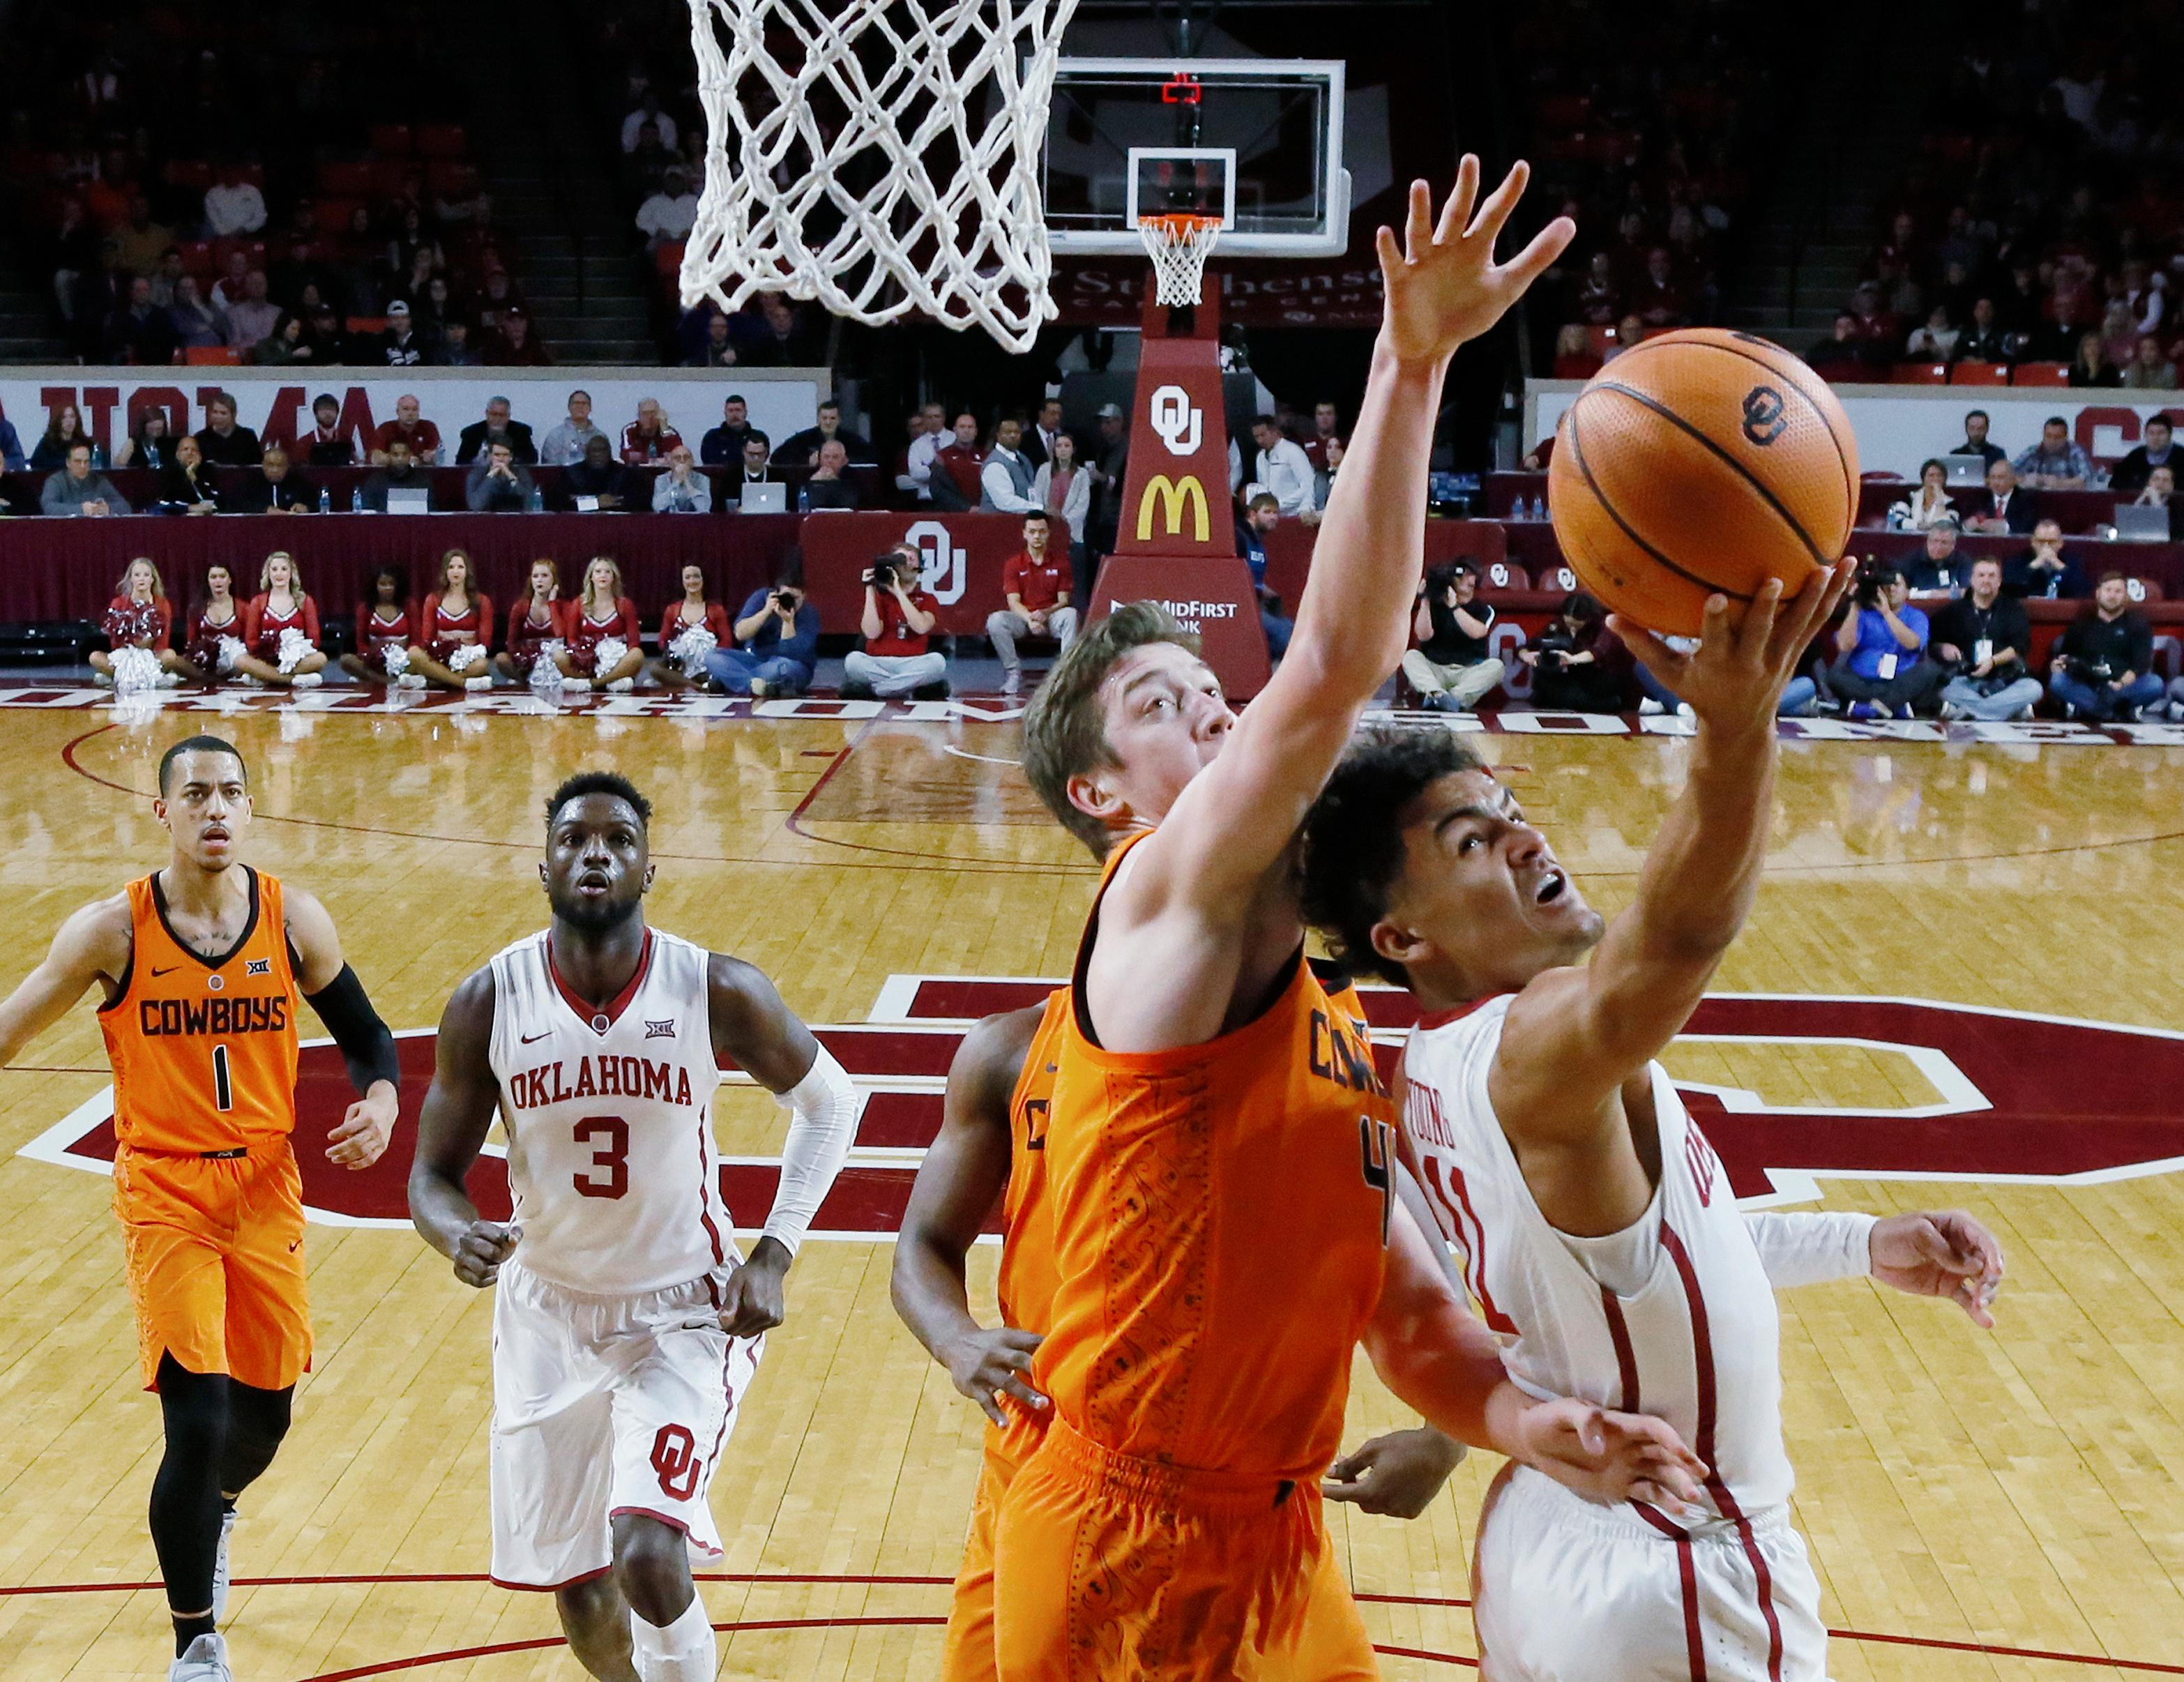 Oklahoma guard Trae Young (11) shoots as Oklahoma State forward Mitchell Solomon, left, defends during the first half of an NCAA college basketball game in Norman, Okla., Wednesday, Jan. 3, 2018. (AP Photo/Sue Ogrocki)